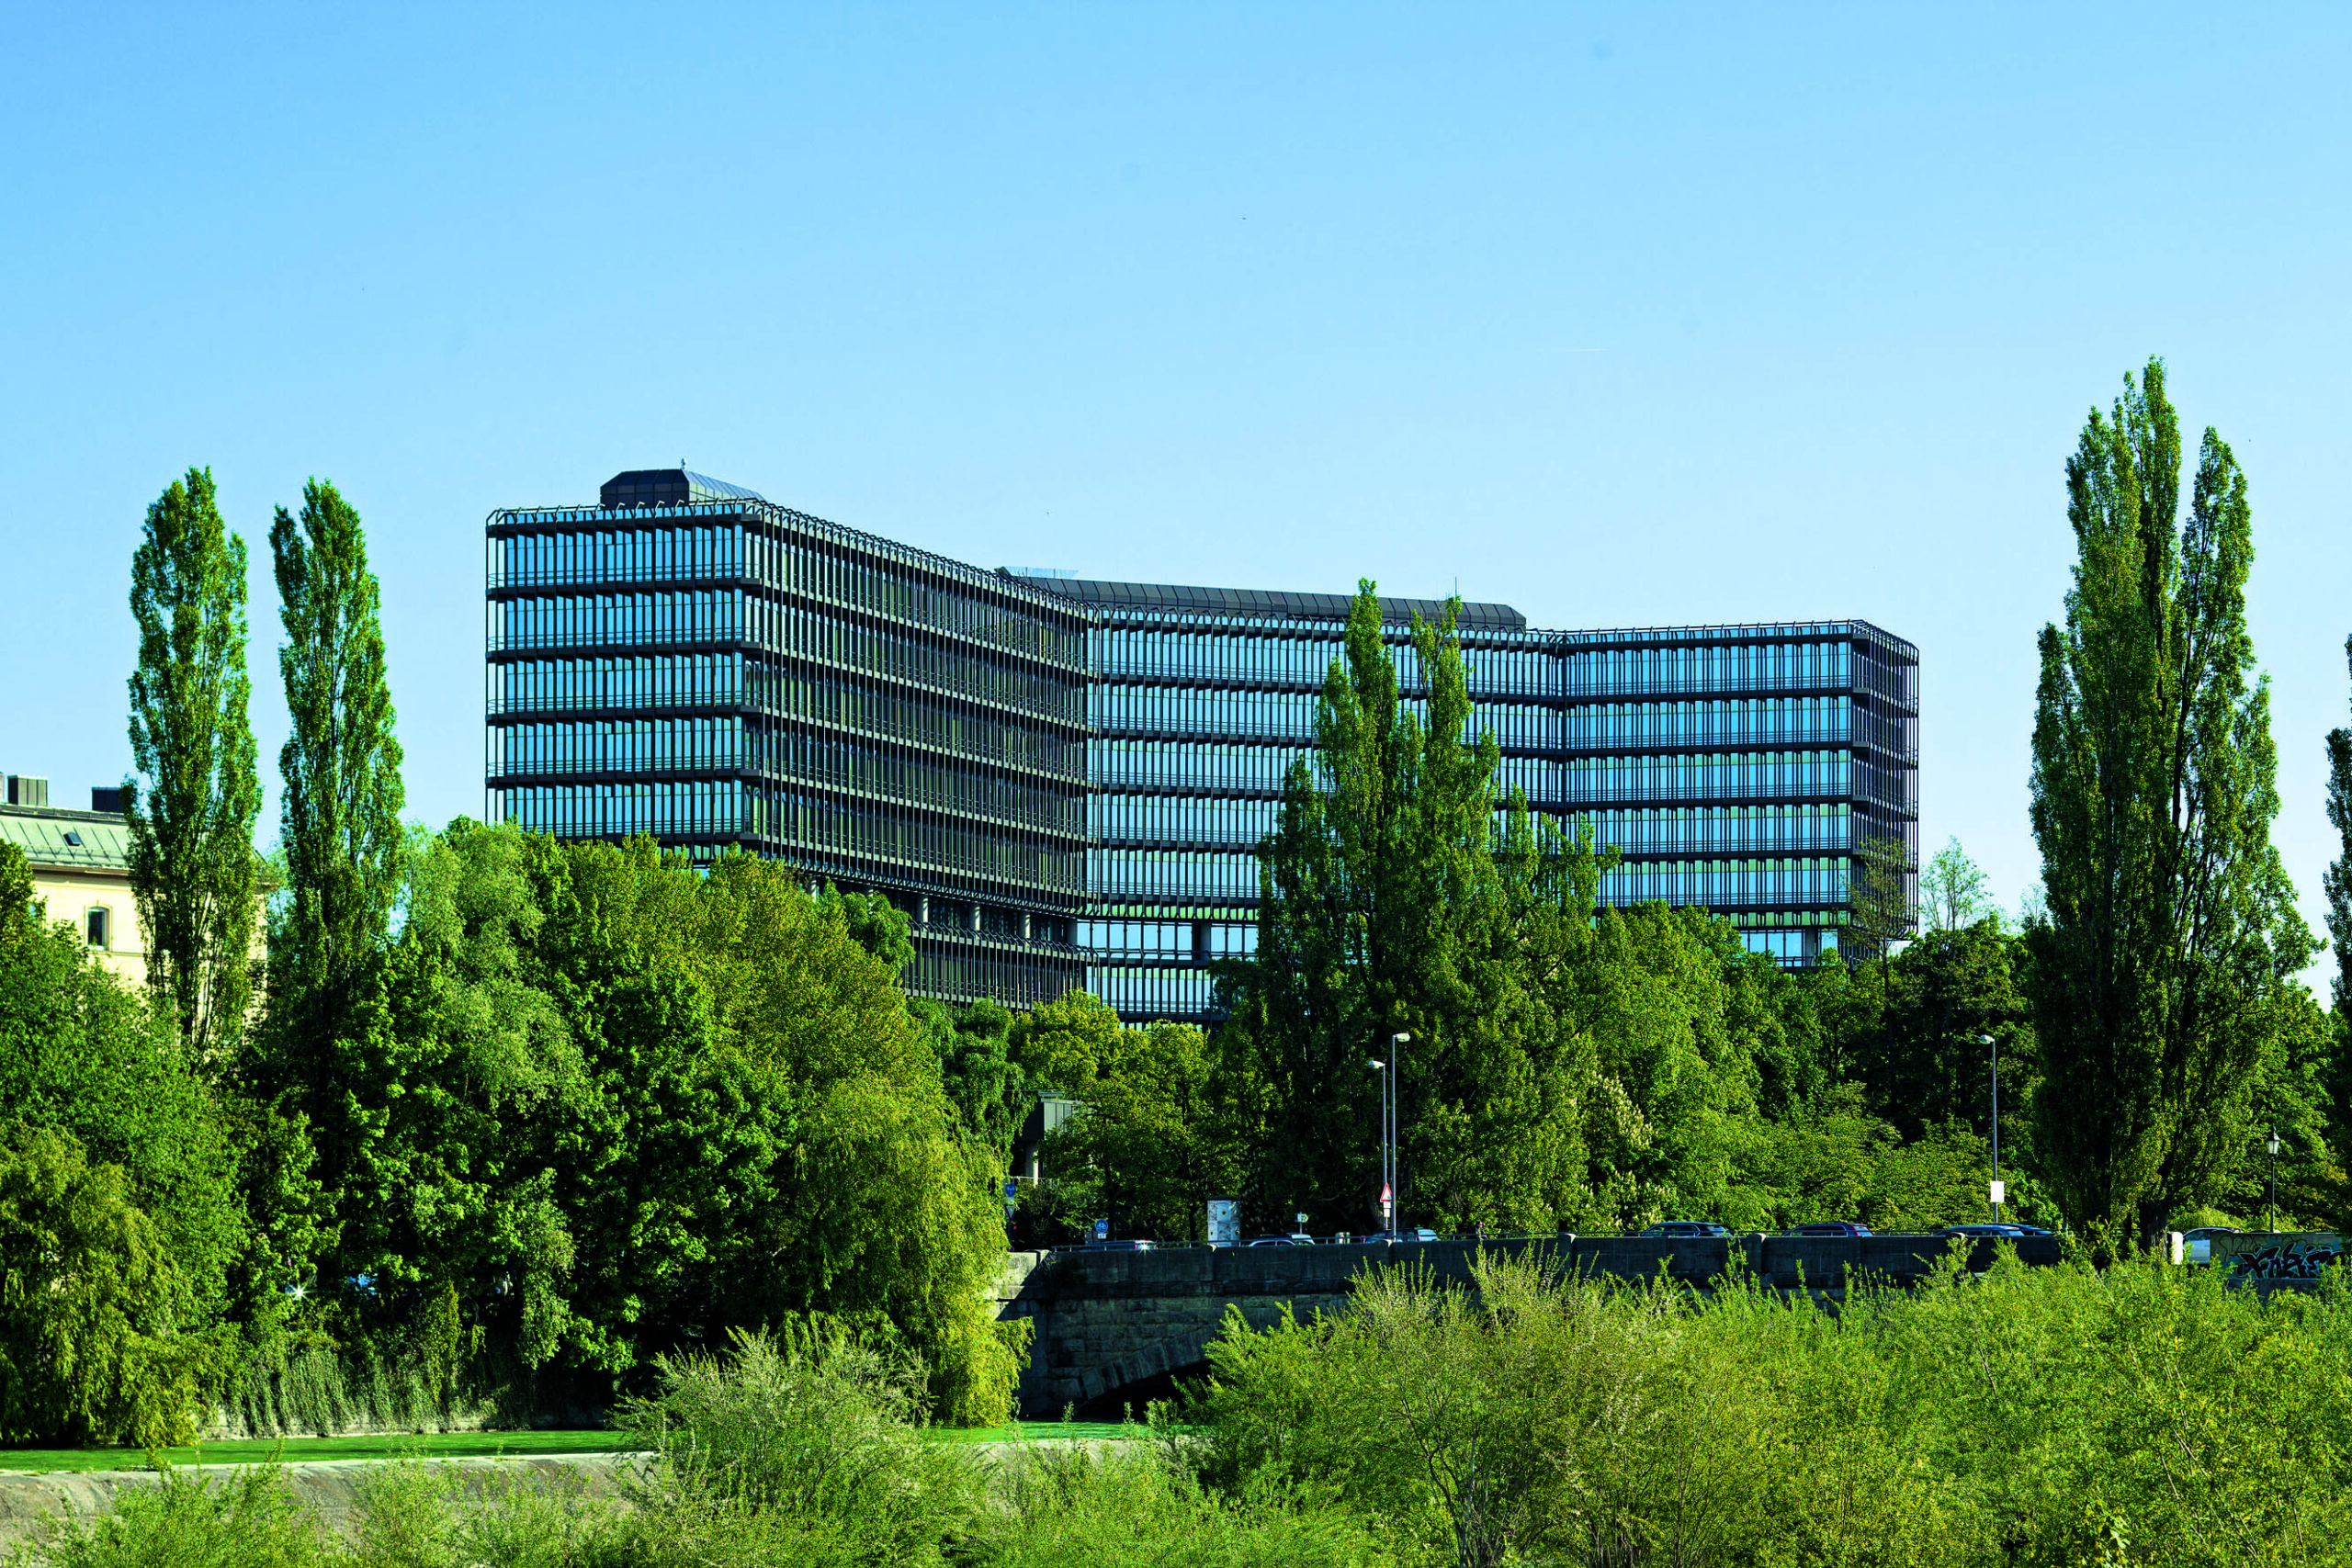 The headquarters of the European Patent Office in Munich